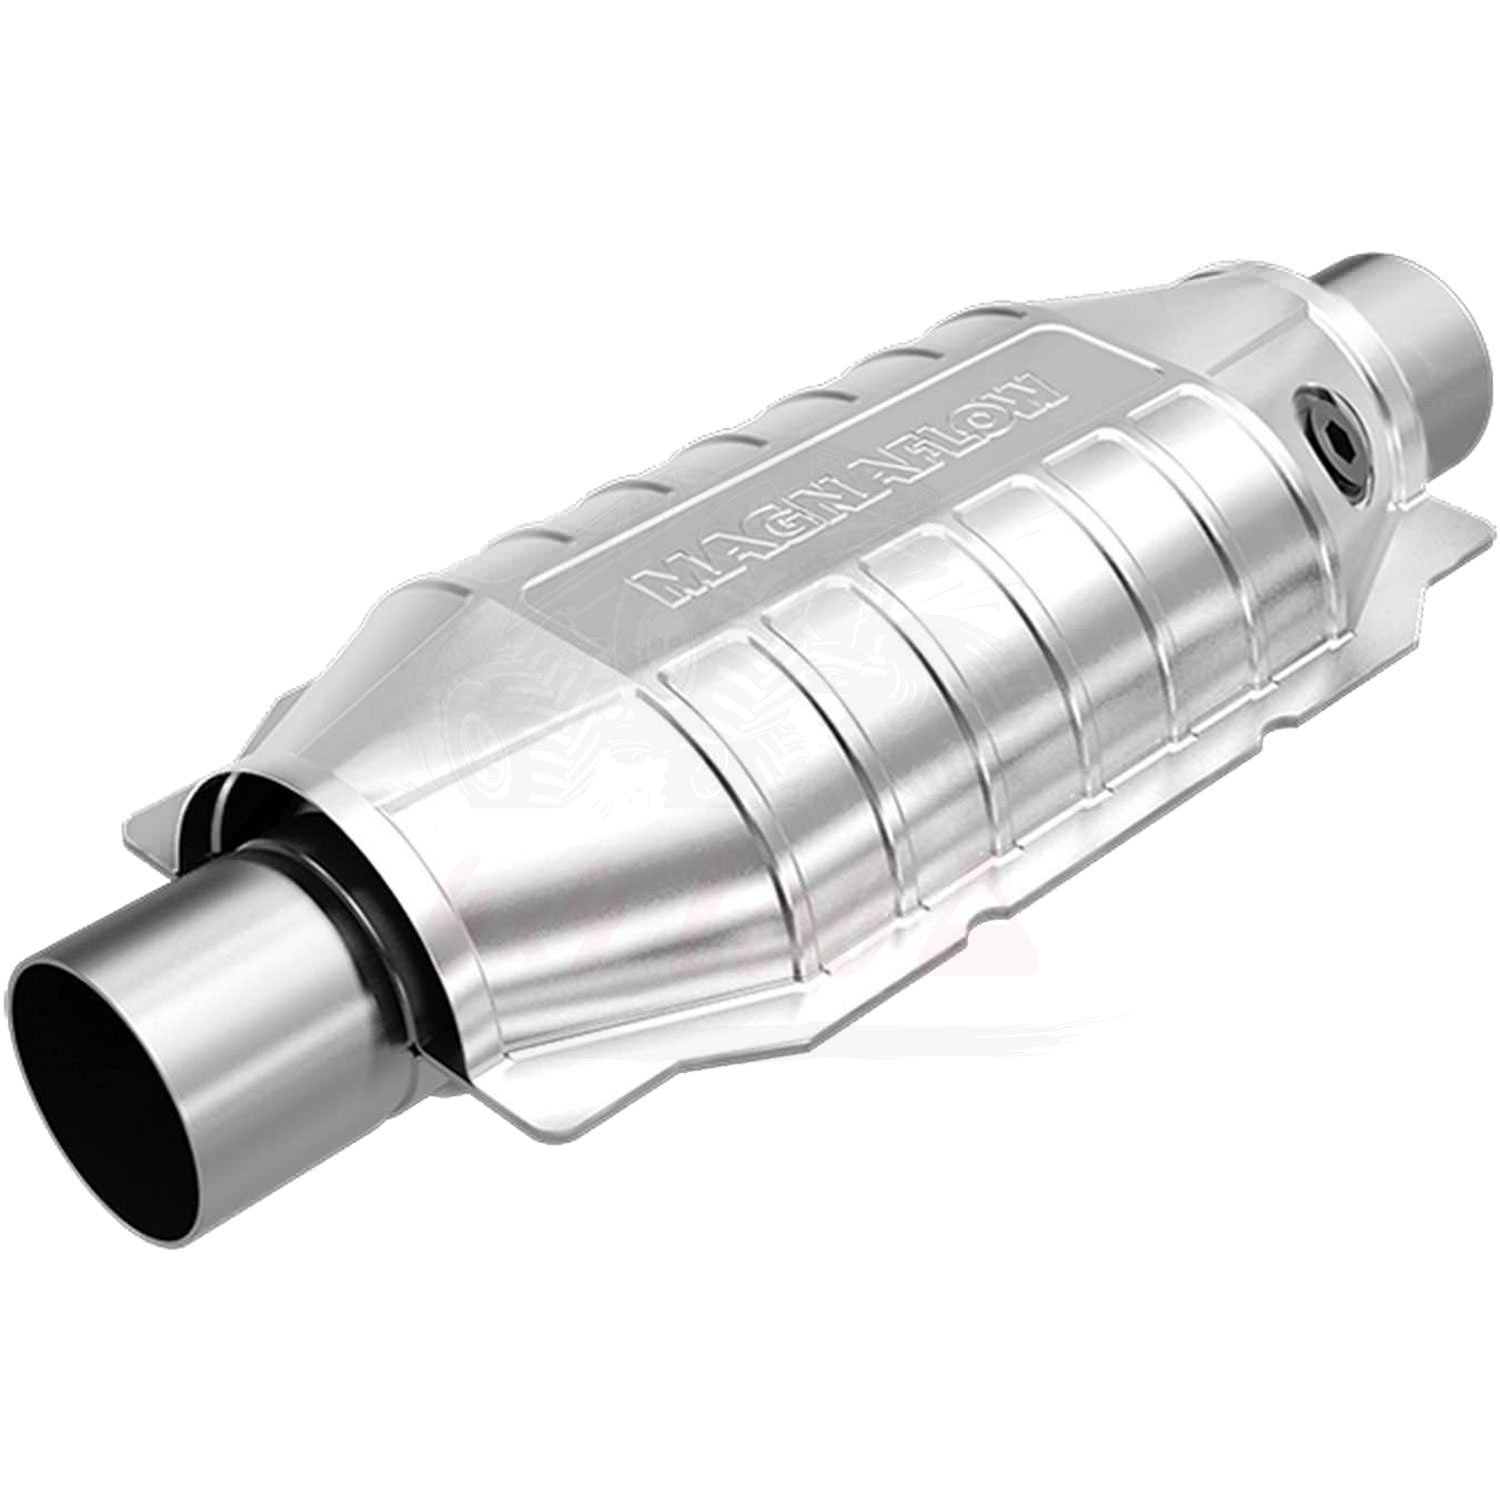 Magnaflow Direct Fit High Performance Catalytic Converter 94039 Universal fit - The best aftermarket exhaust systems for your Truck, Car or SUV!